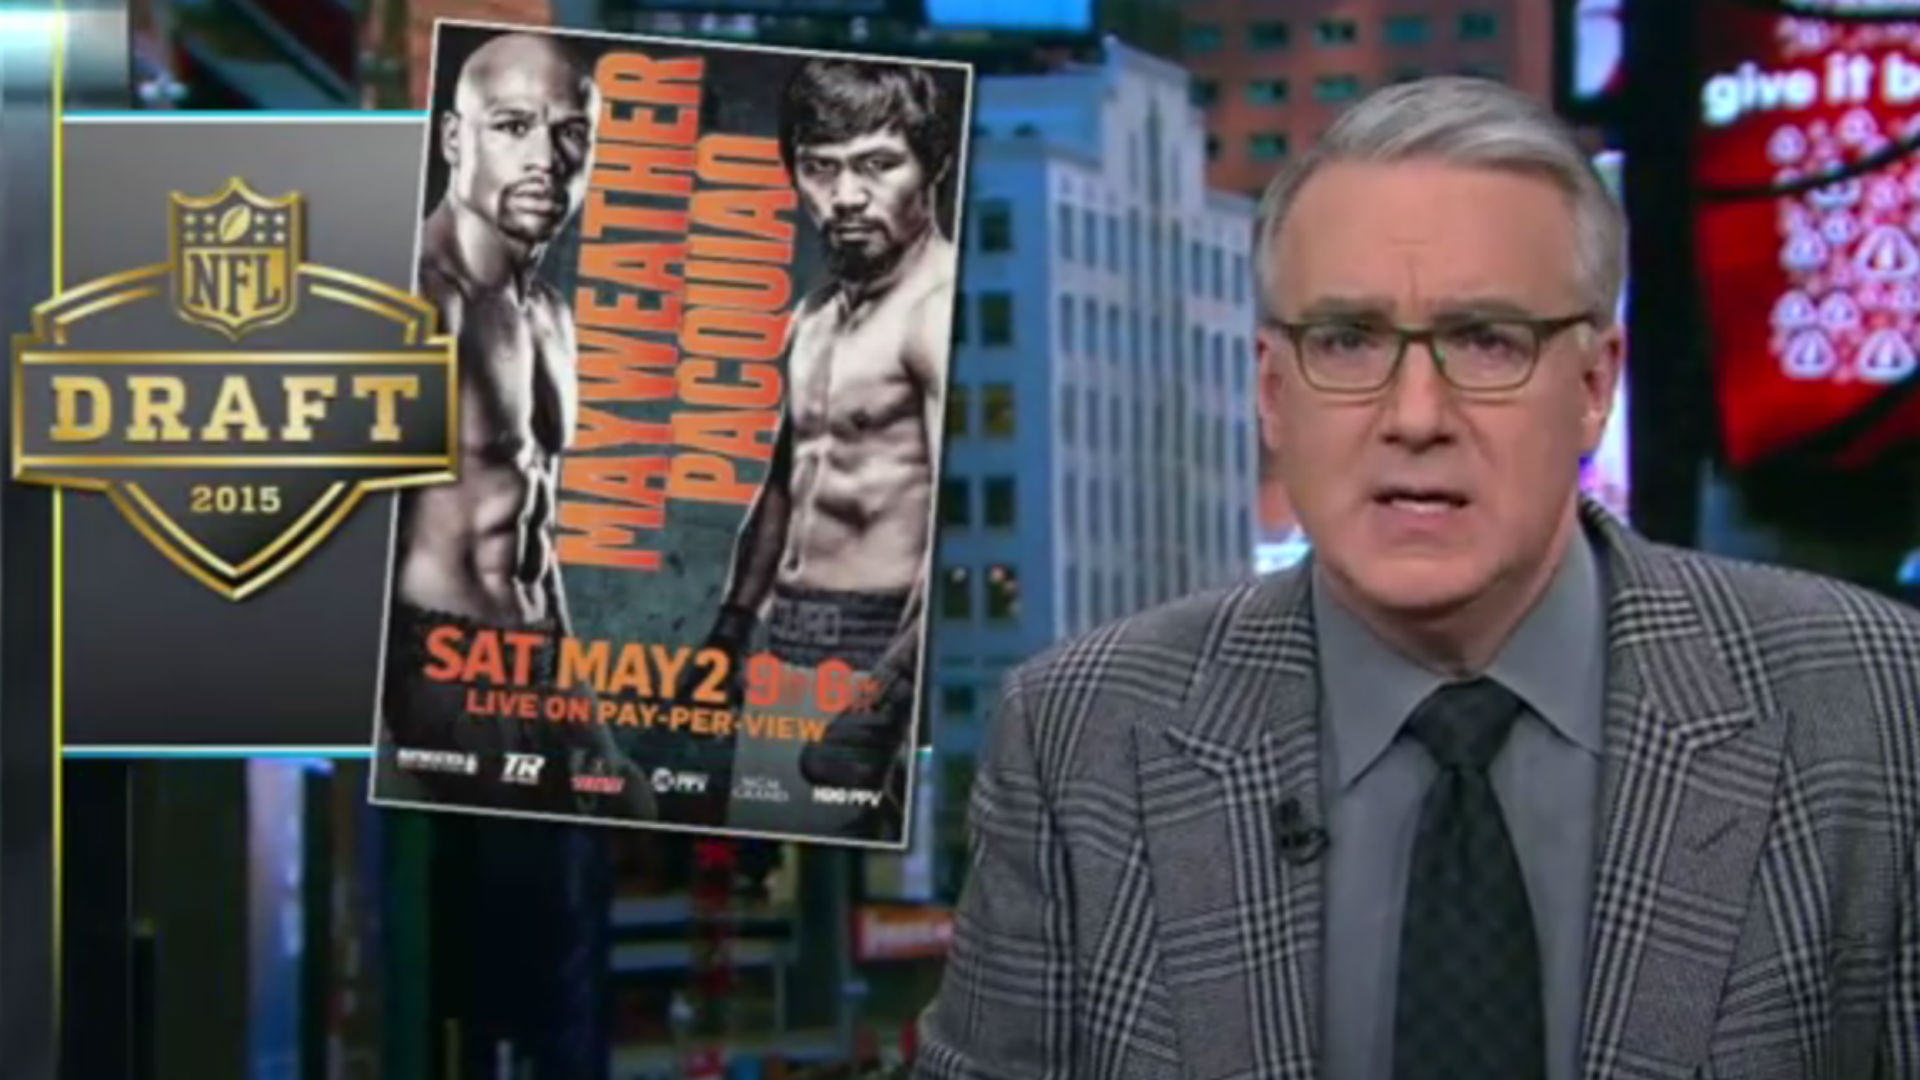 Keith Olbermann calls for boycott of Mayweather vs. Pacquiao fight, NFL Draft